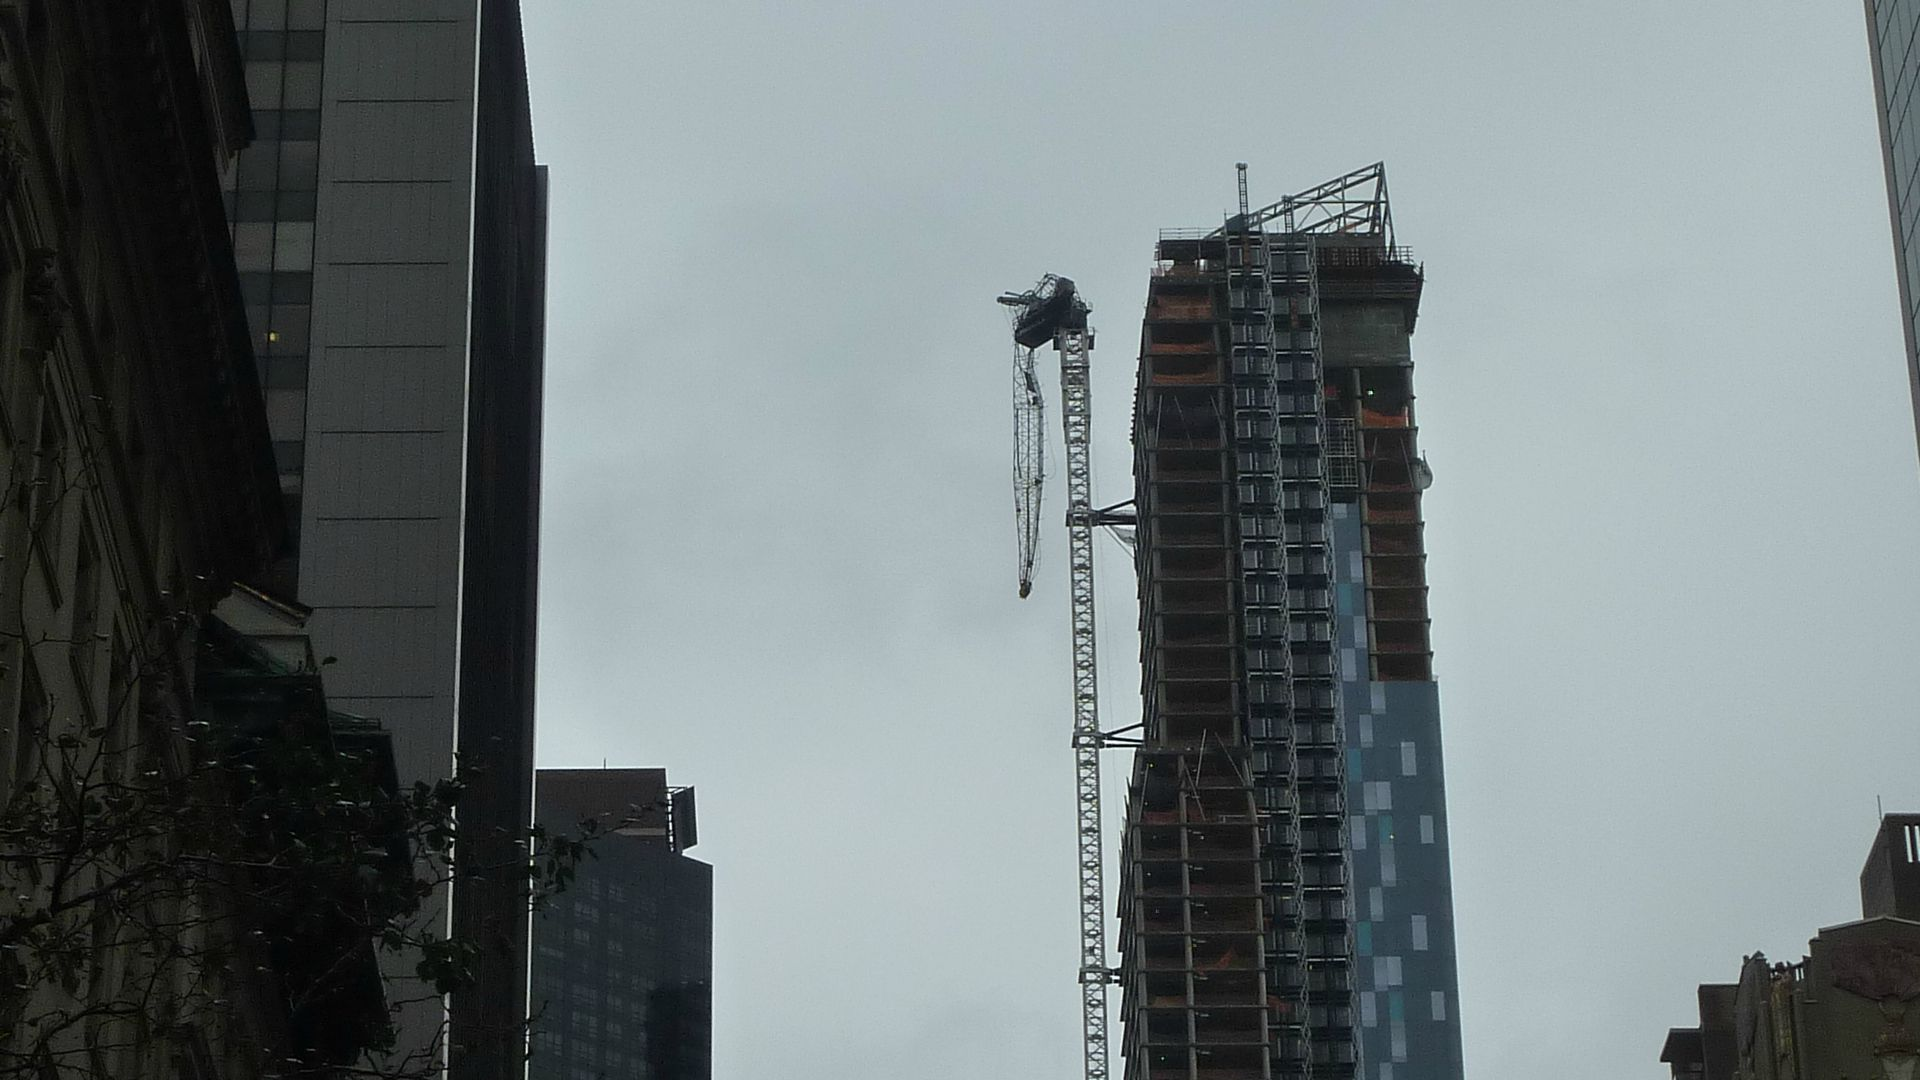 Gratte ciel en construction photo de sandy new york ouragan sandy hur - Construction gratte ciel ...